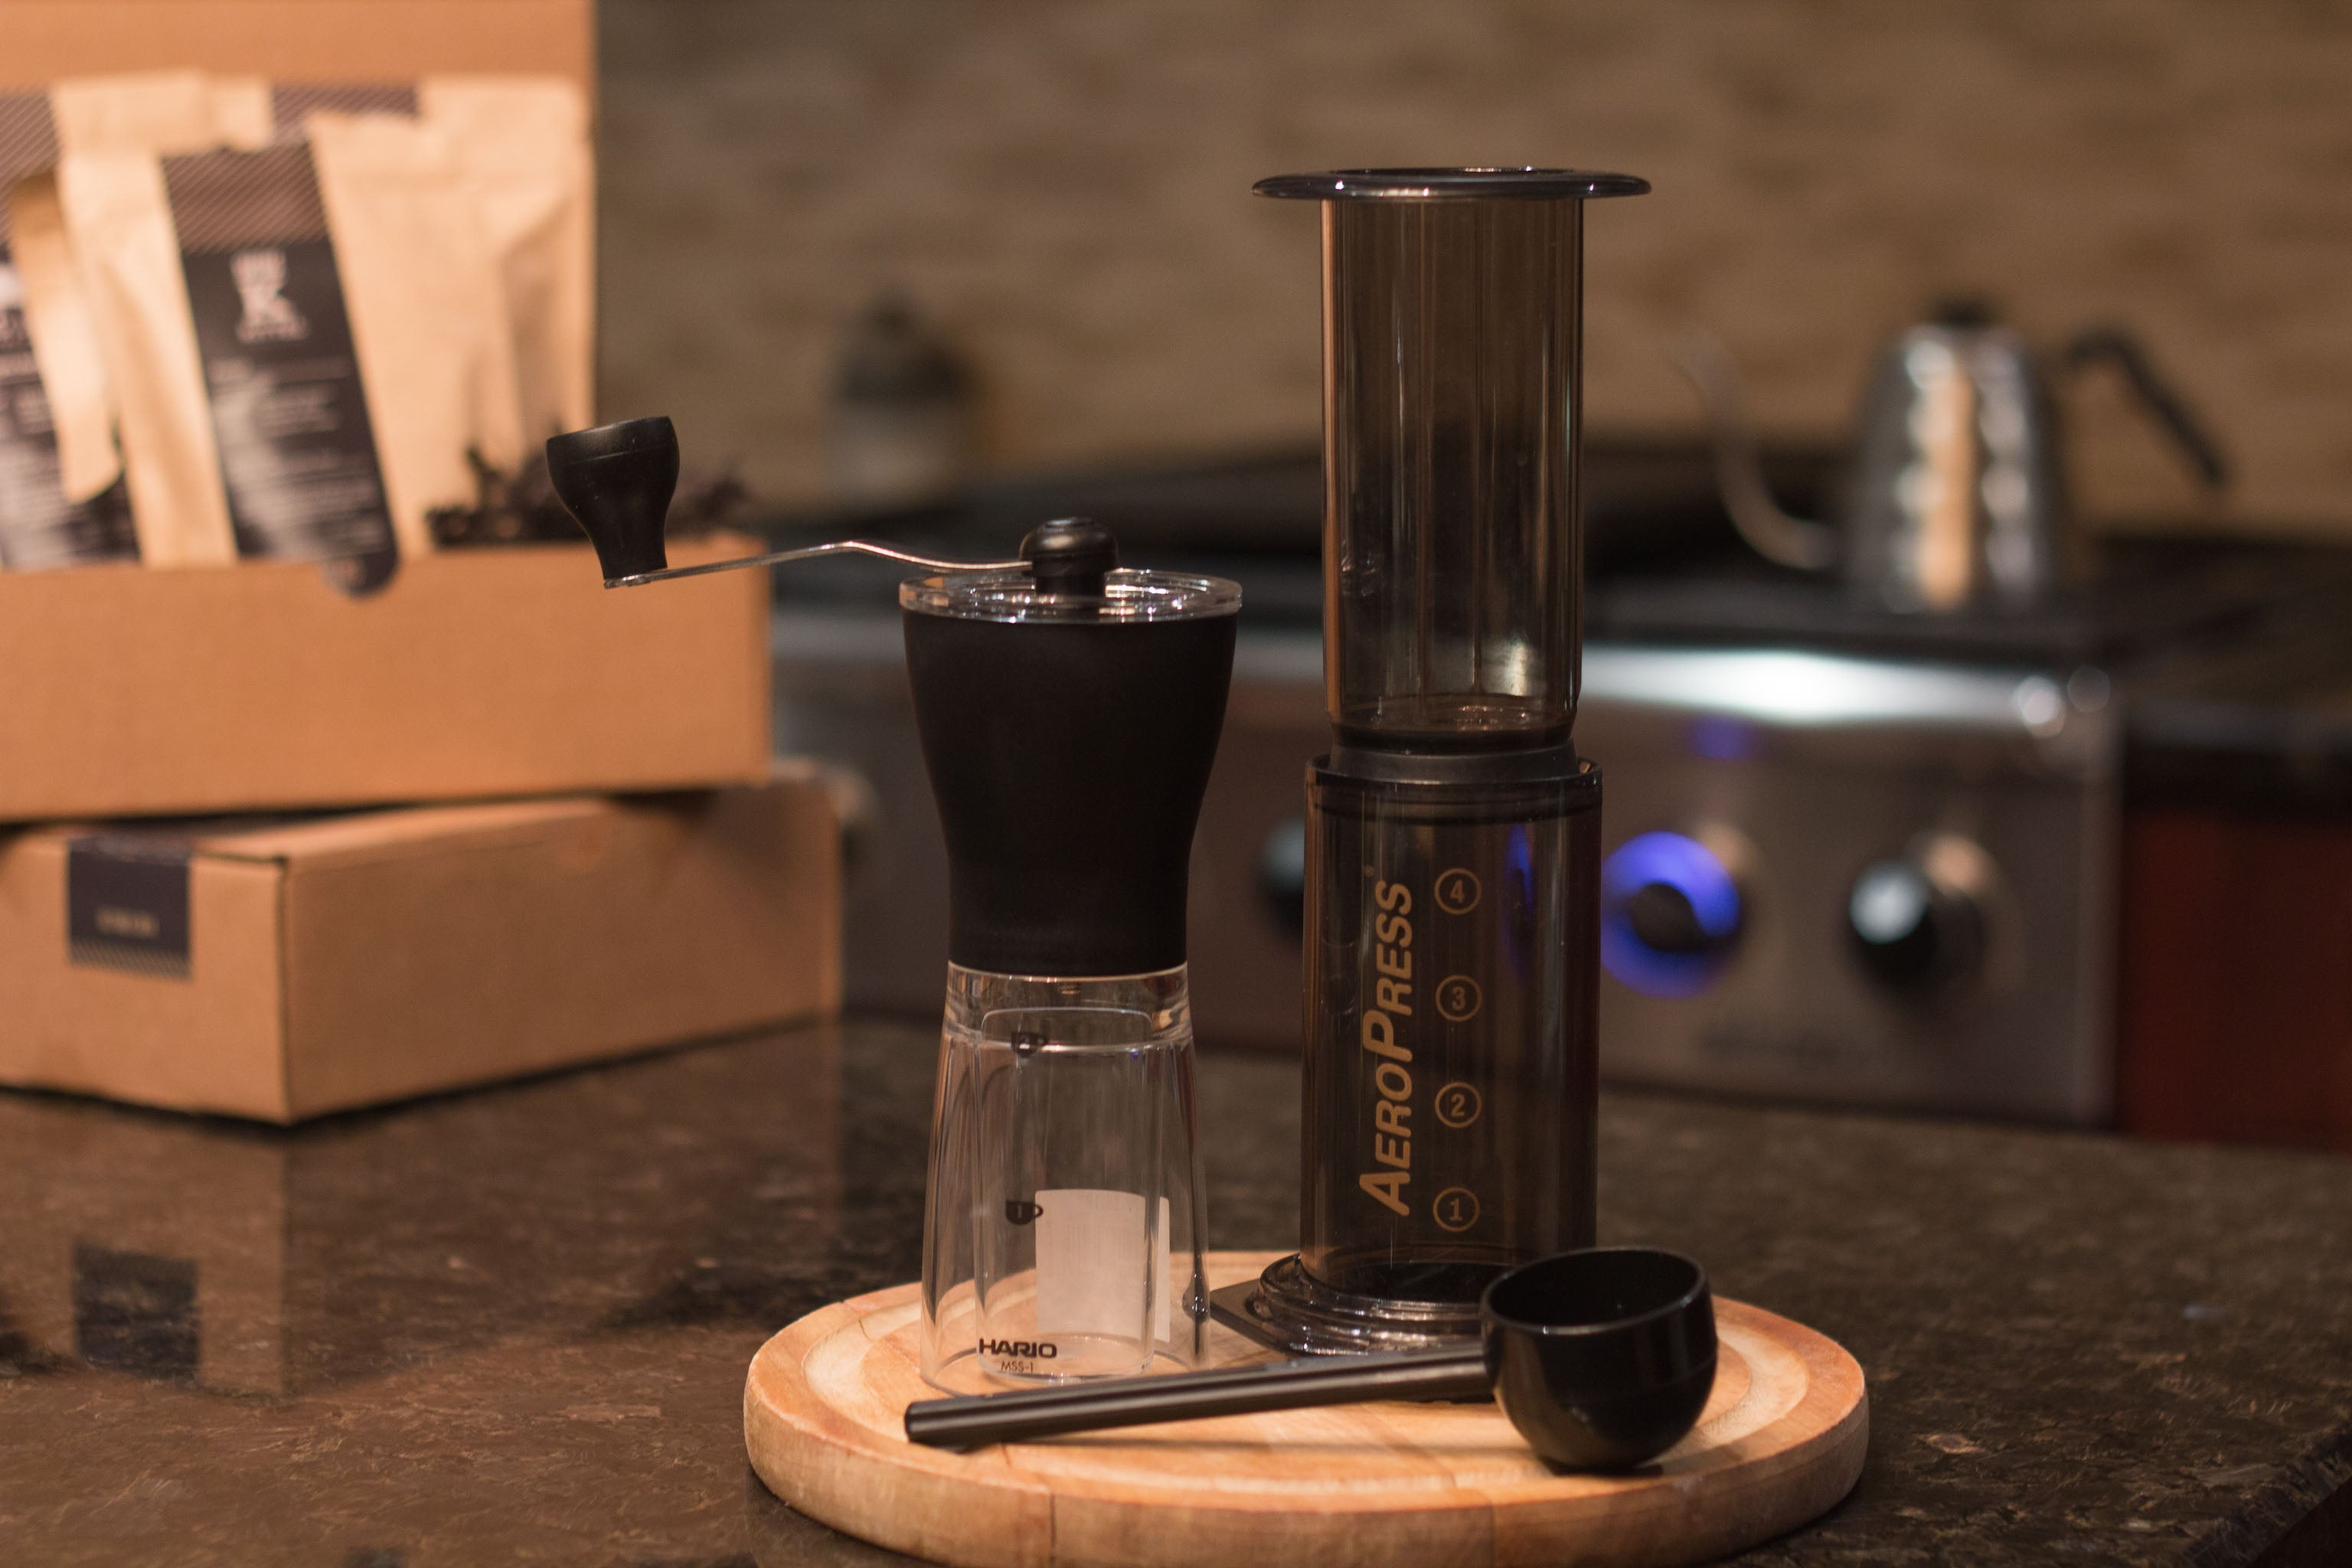 Aeropress Grinder and the Roasters Pack